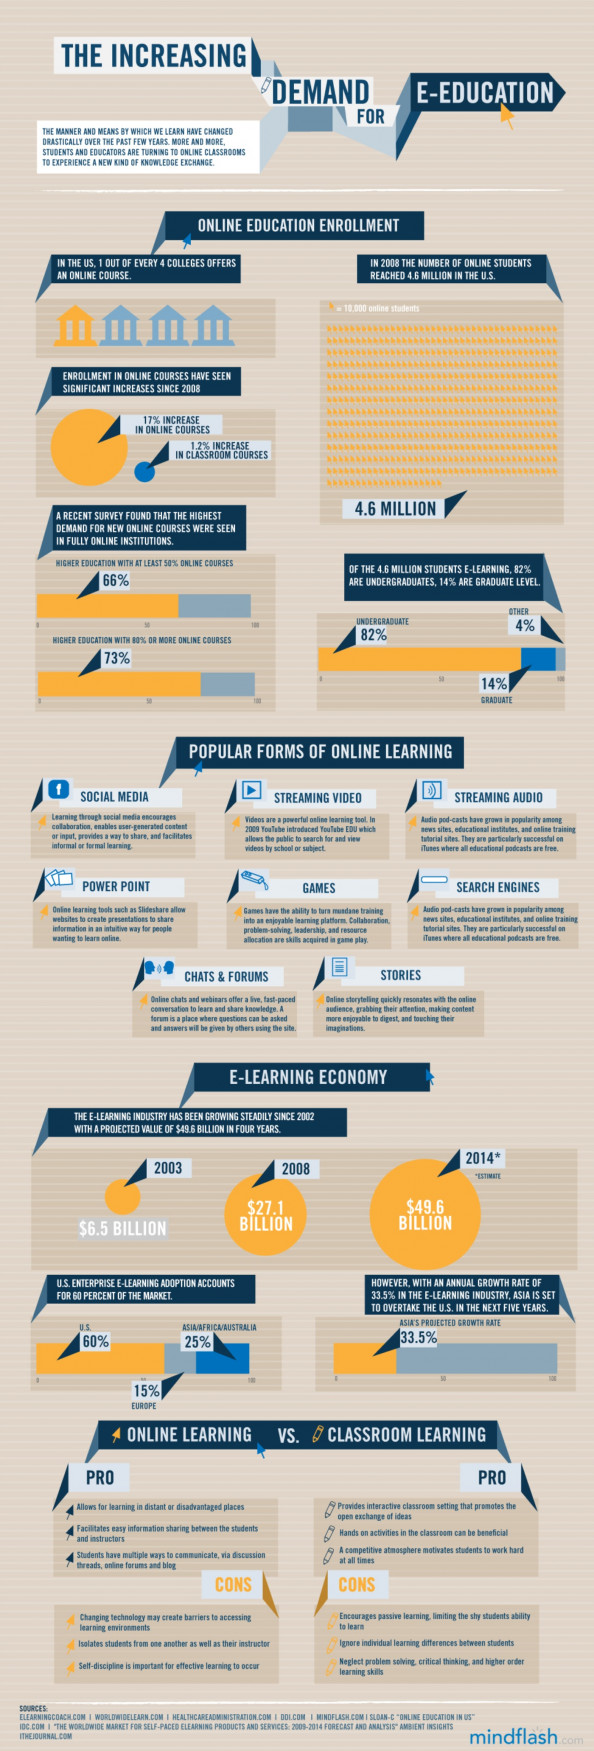 The Increasing Demand for E-Education  Infographic